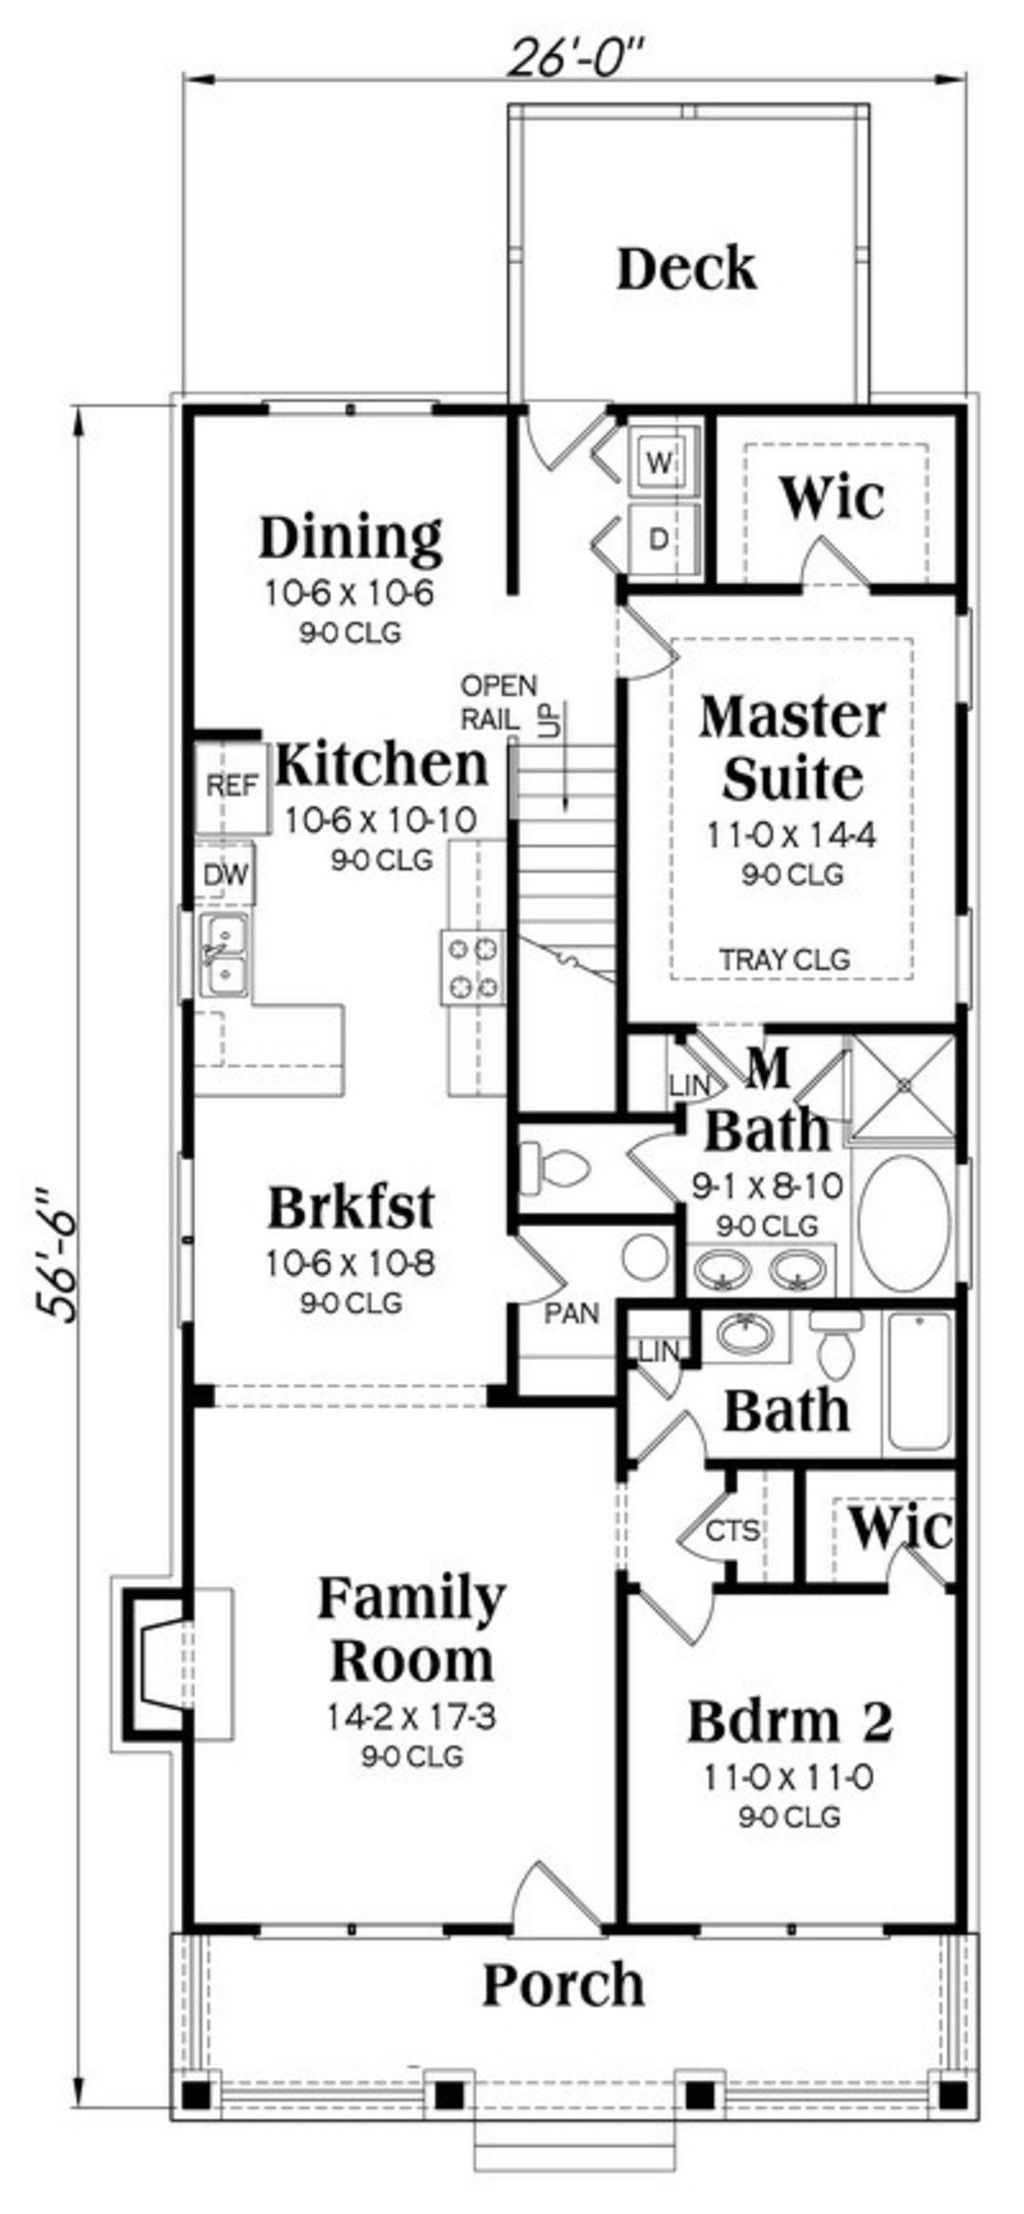 Craftsman Style House Plan 4 Beds 3 Baths 1853 Sq Ft Plan 419 254 Rectangle House Plans Craftsman Floor Plans Bungalow House Floor Plans